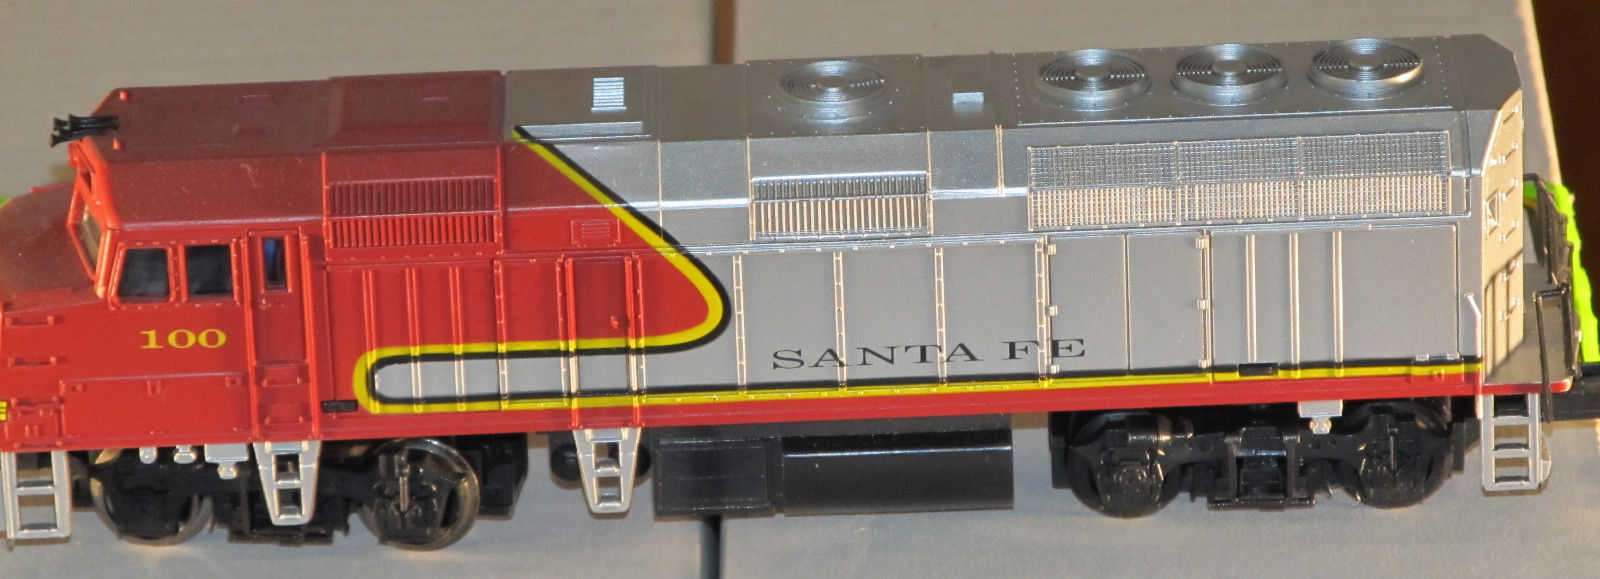 Life Like Ho Scale Santa Fe F40ph Diesel Locomotive Jason S Hobby Depot Trains And Locomotives Model Trains Toy Trains Railroads